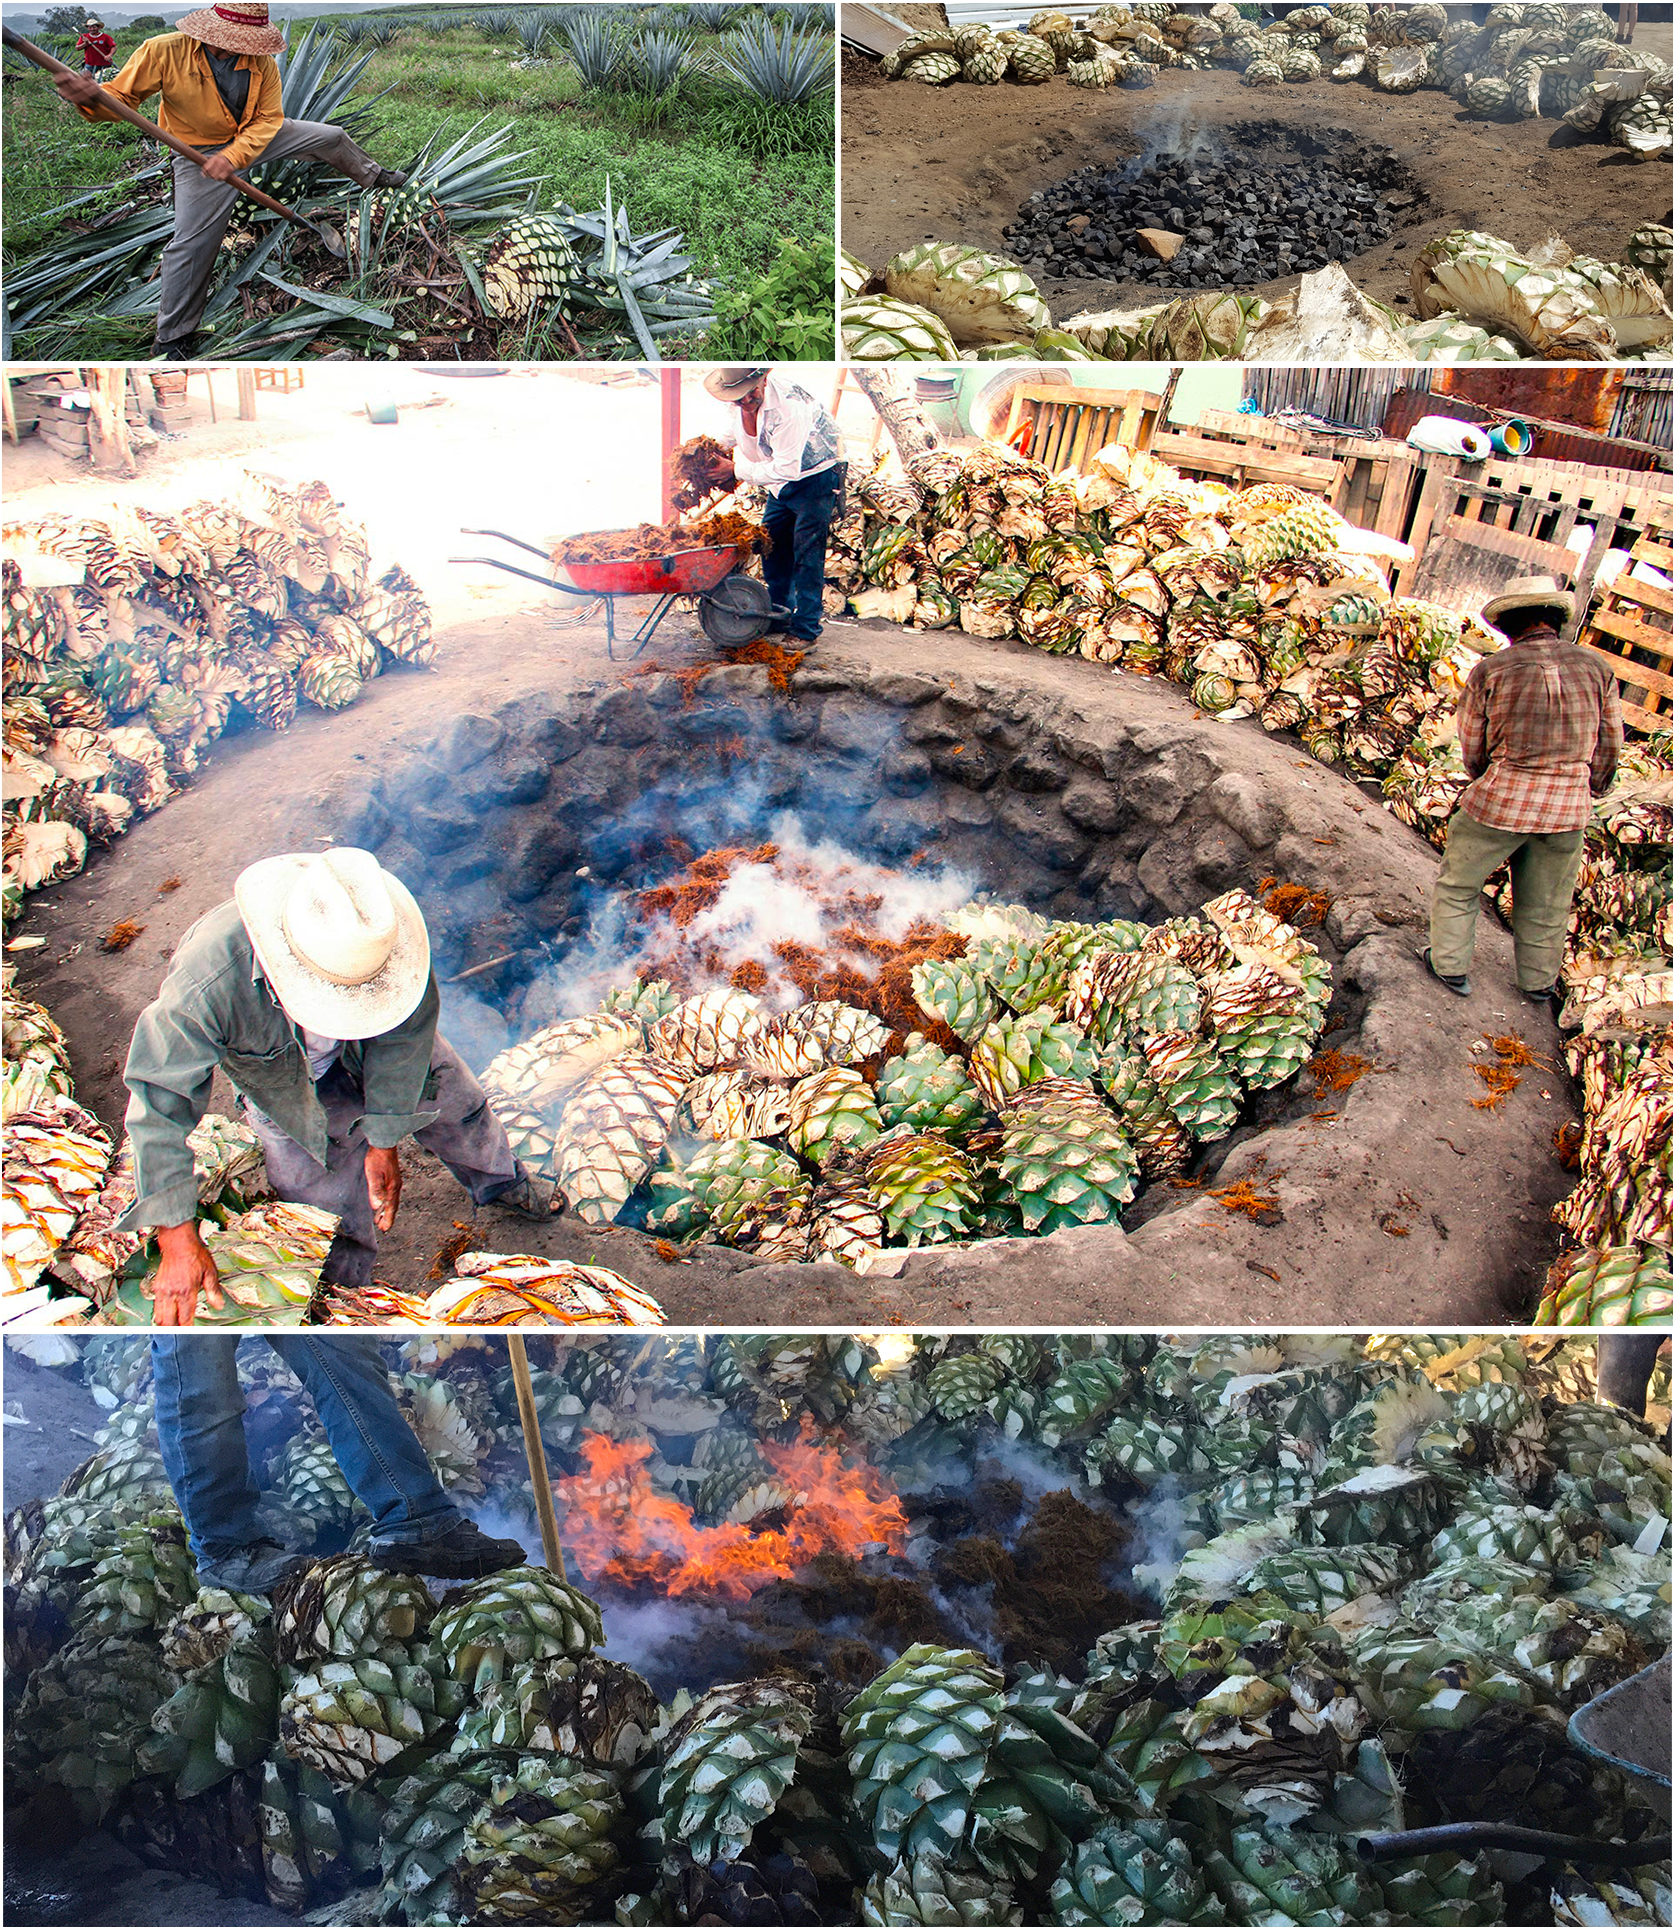 cooking agave for mezcal - jimador - conic stone oven